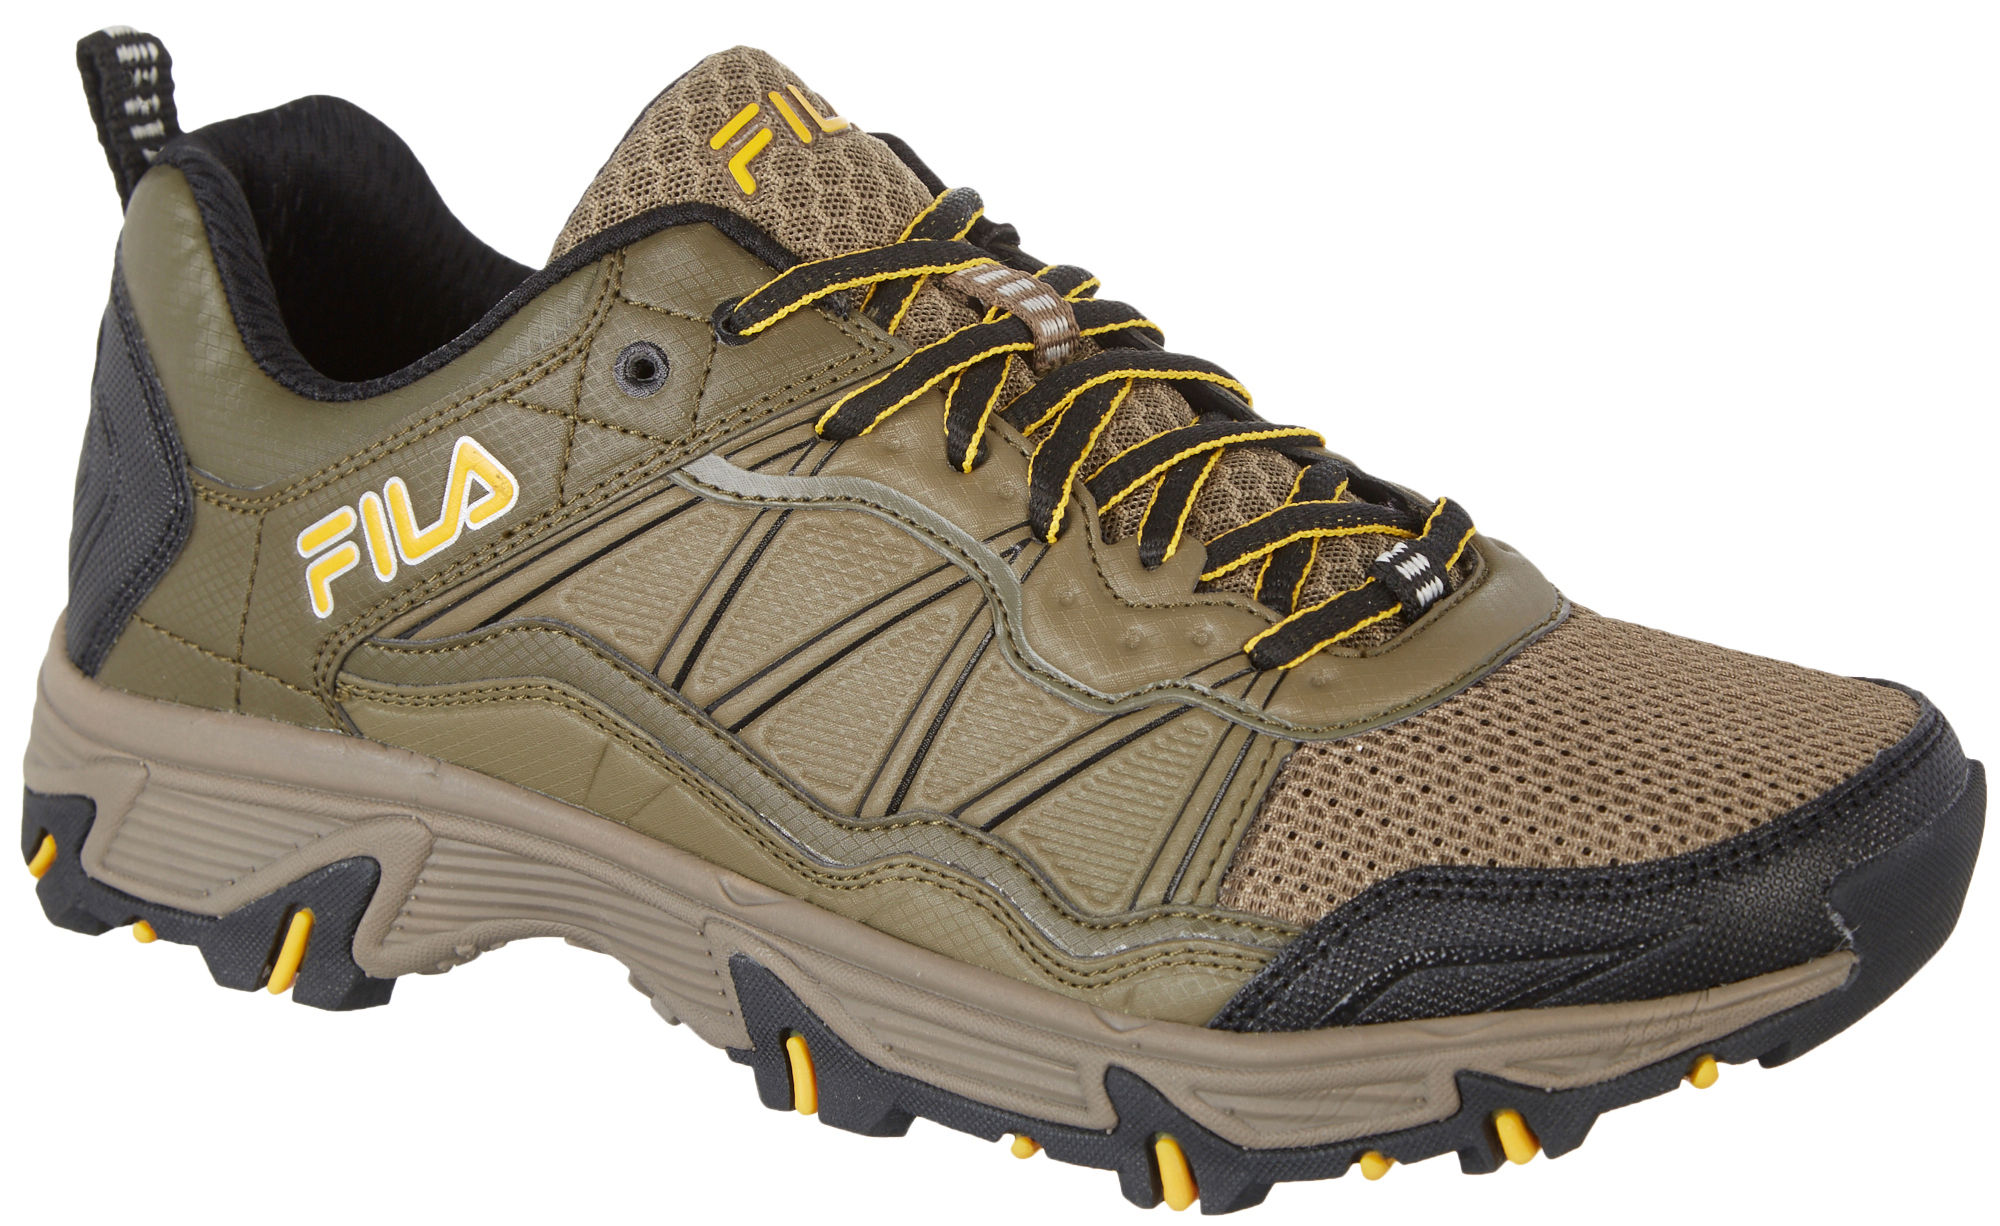 Men's Fila At Peake 20 Running Shoes buy cheap largest supplier YZIaRxbR